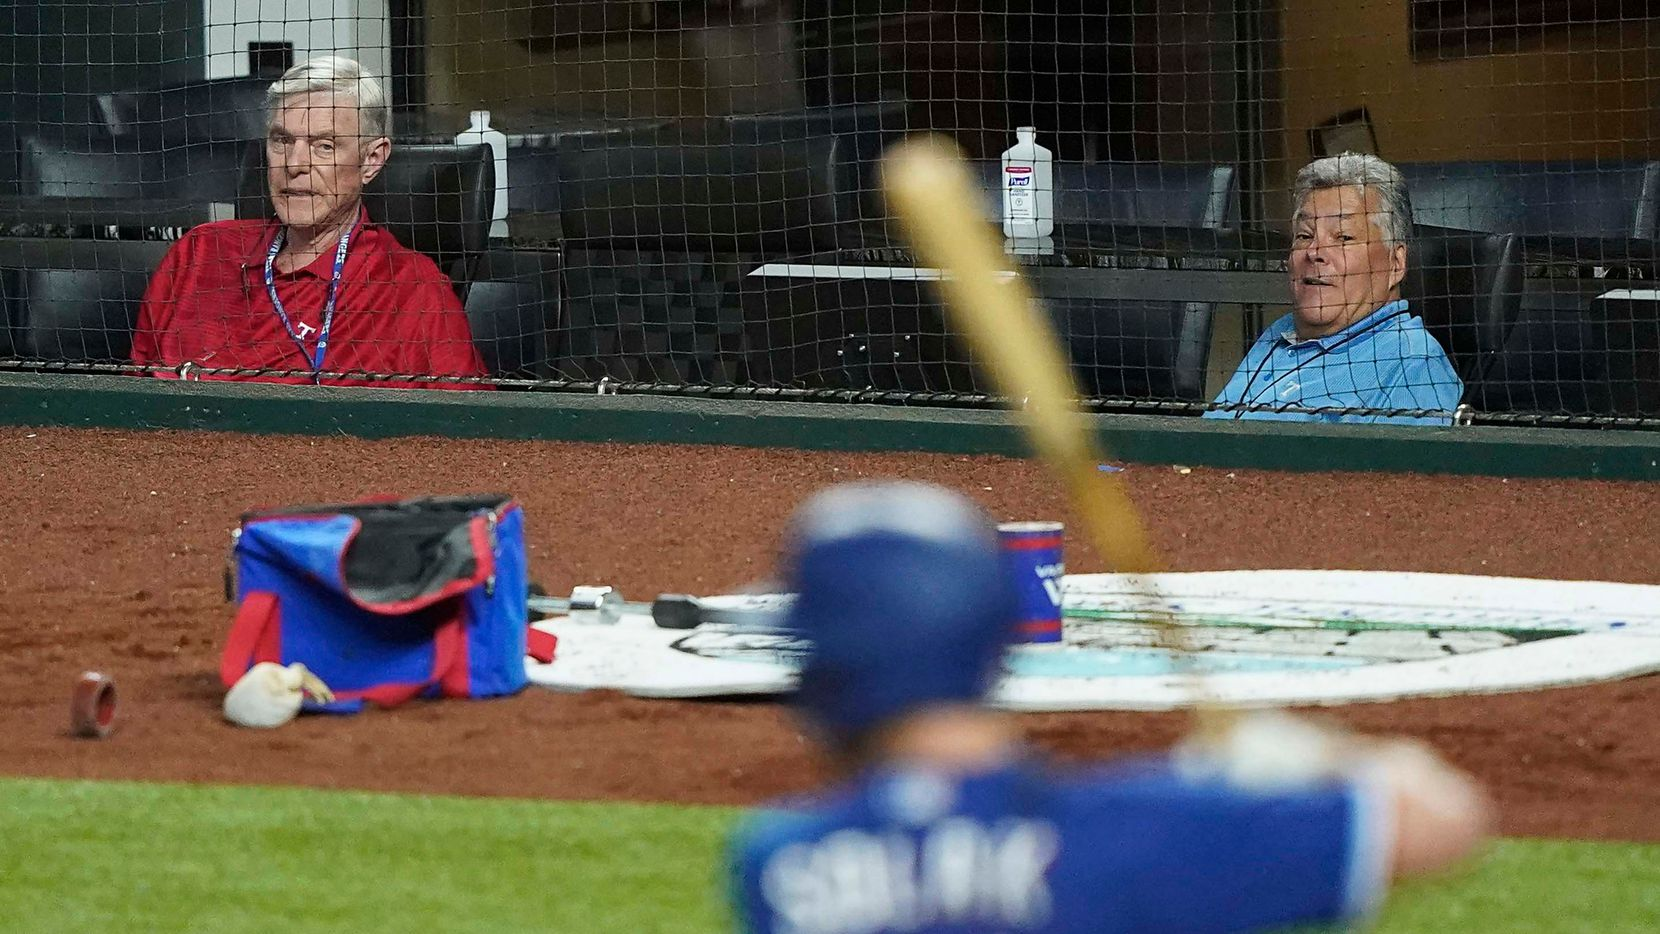 Texas Rangers co-chairman and managing partner Ray C. Davis (left) and chairman, ownership committee and chief operating officer Neil Leibman watch outfielder Nick Solak bat during an exhibition game against the Colorado Rockies at Globe Life Field on Tuesday, July 21, 2020.